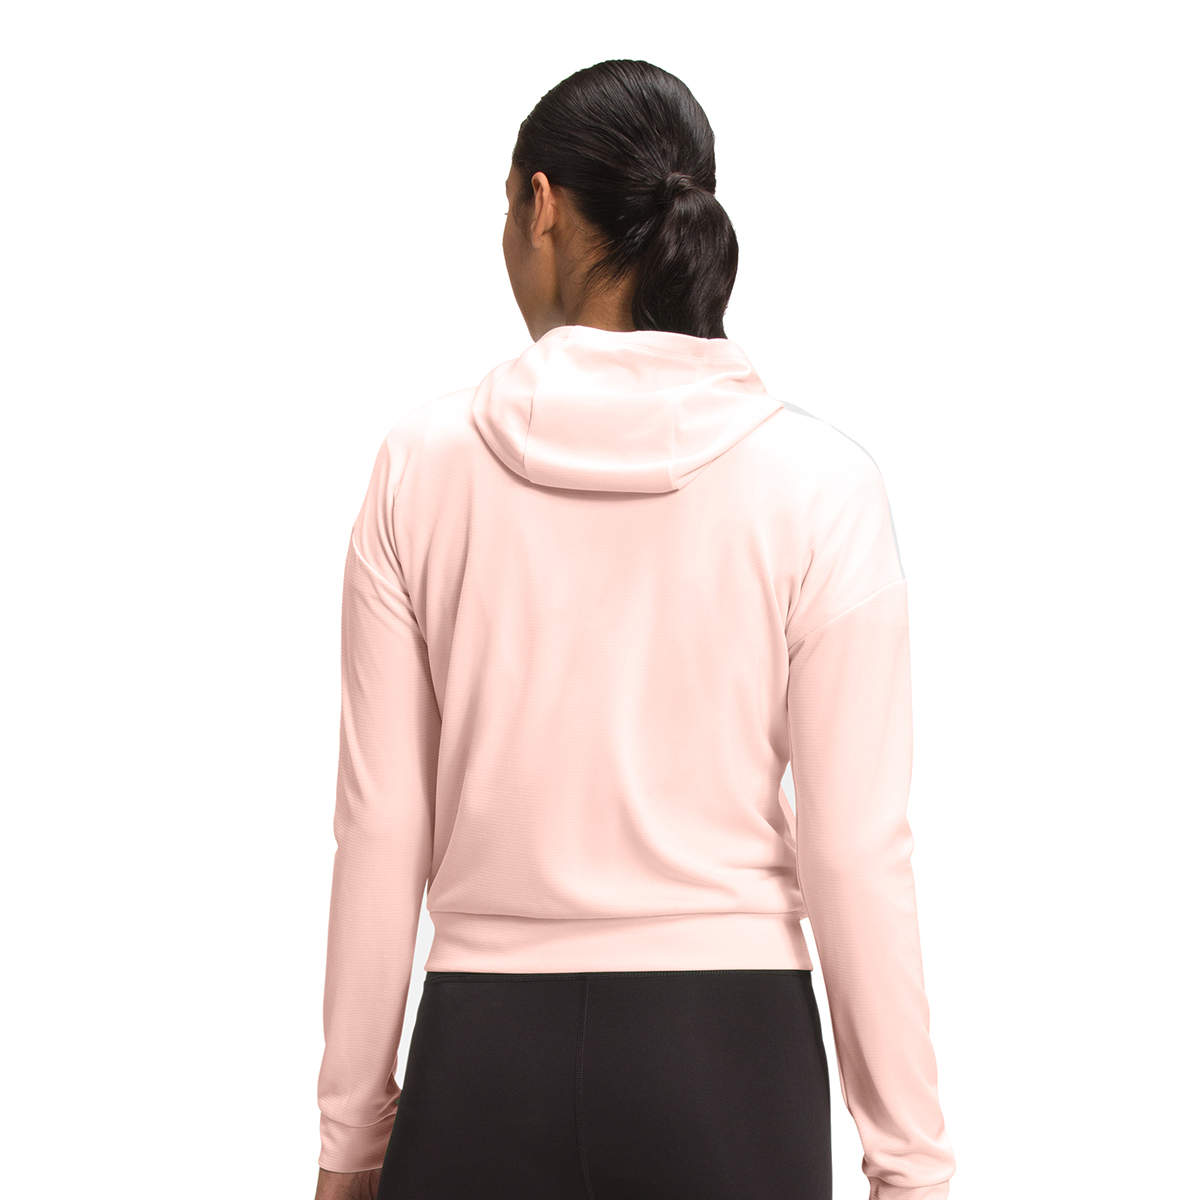 Women's The North Face Wander Hoodie - Color: Pearl Blush - Size: XS, Pearl Blush, large, image 2